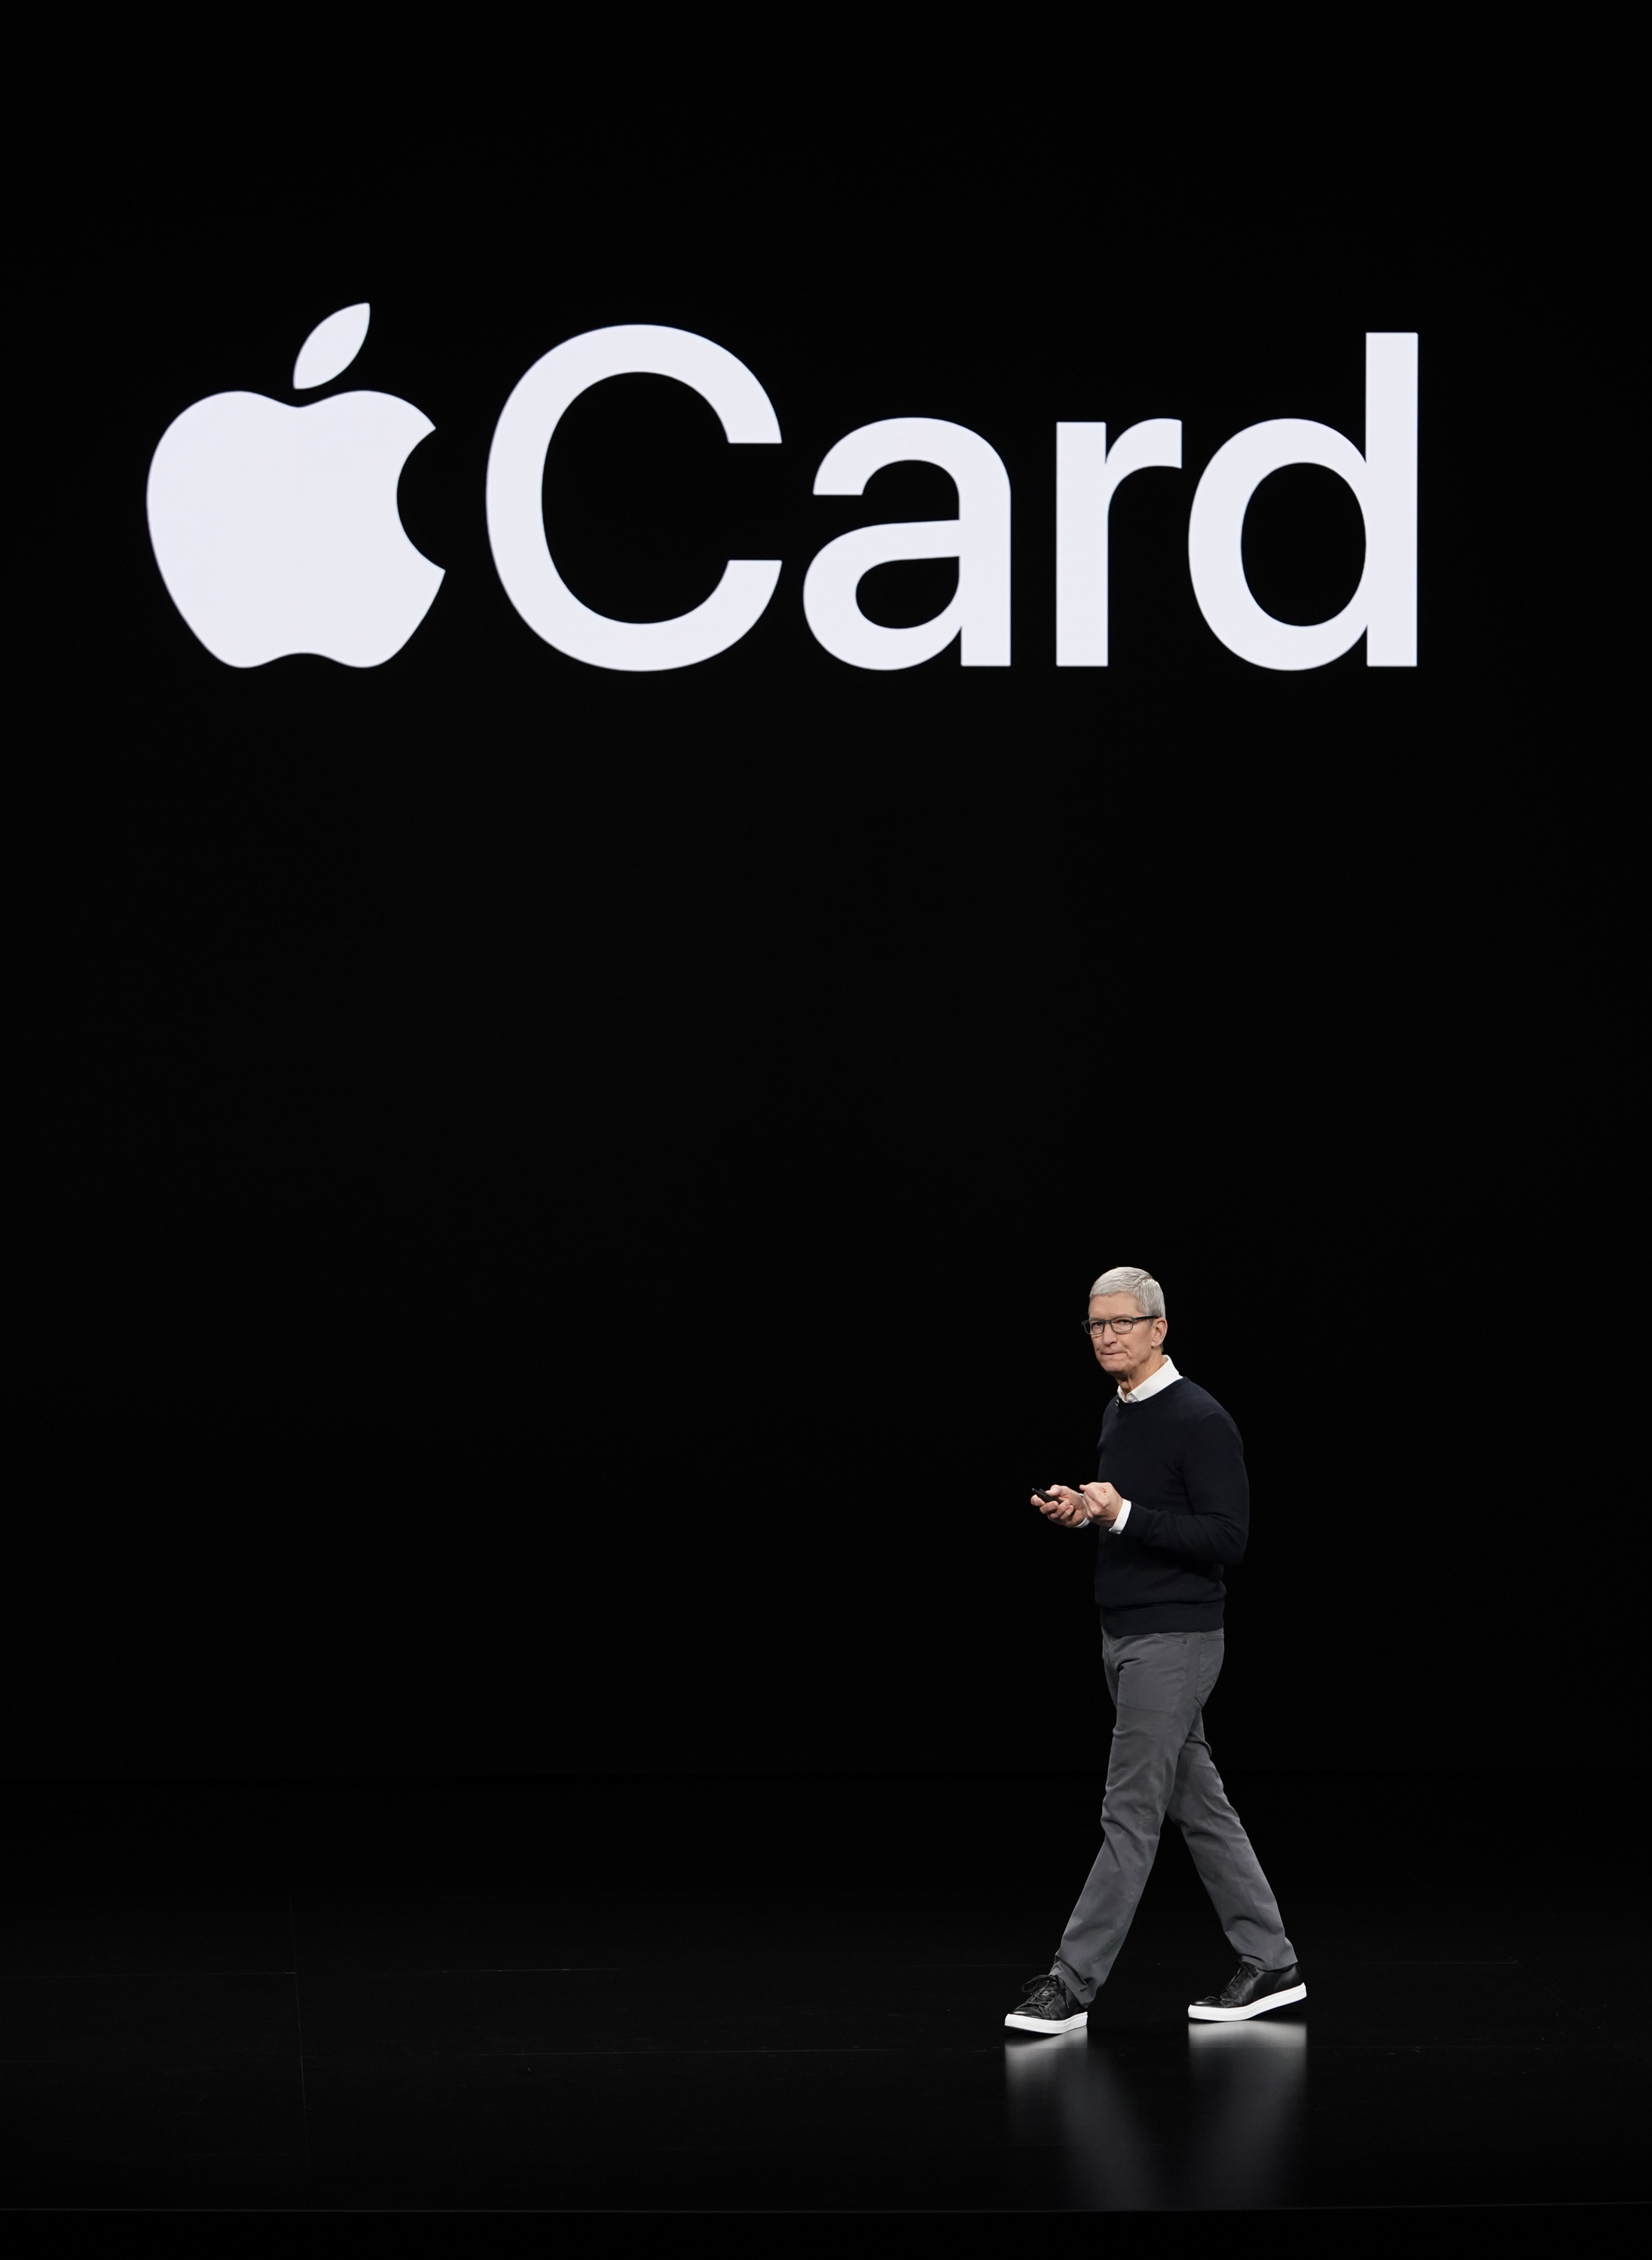 qz.com - John Detrixhe - The most original thing about Apple's credit card isn't its app, fees, or laser-etched titanium